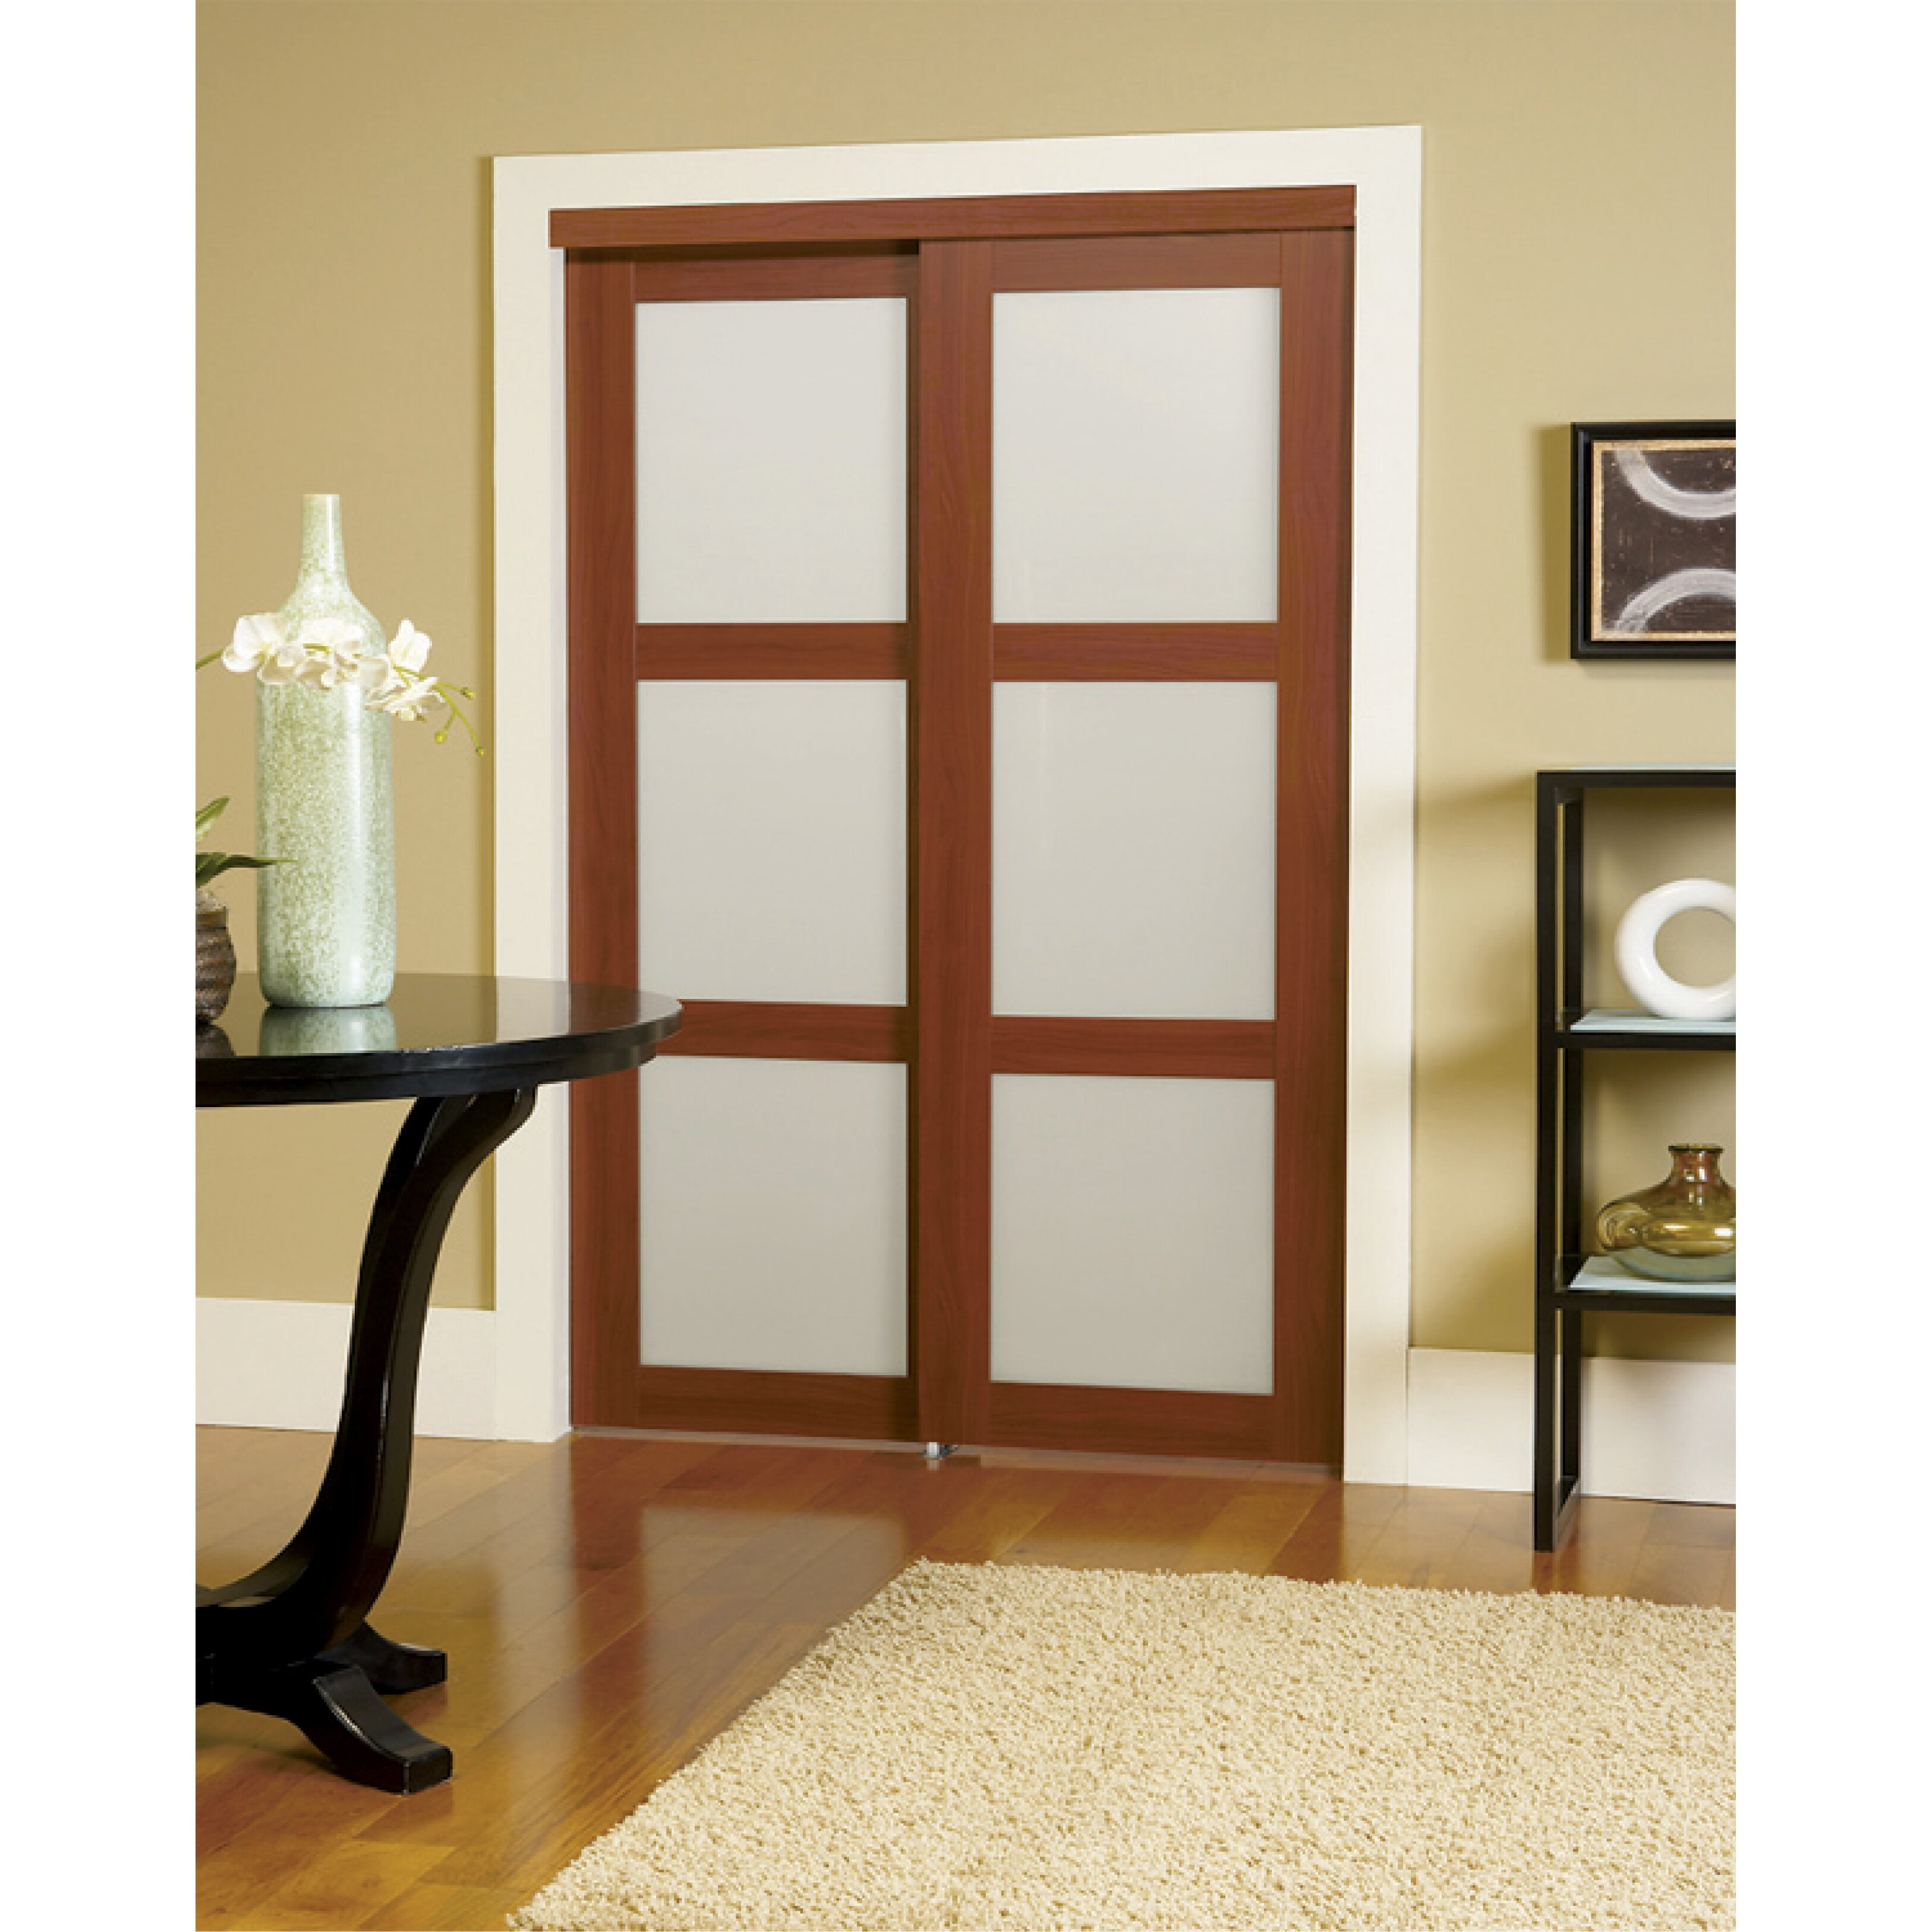 Erias home designs baldarassario mdf 2 panel painted for Sliding panel doors interior